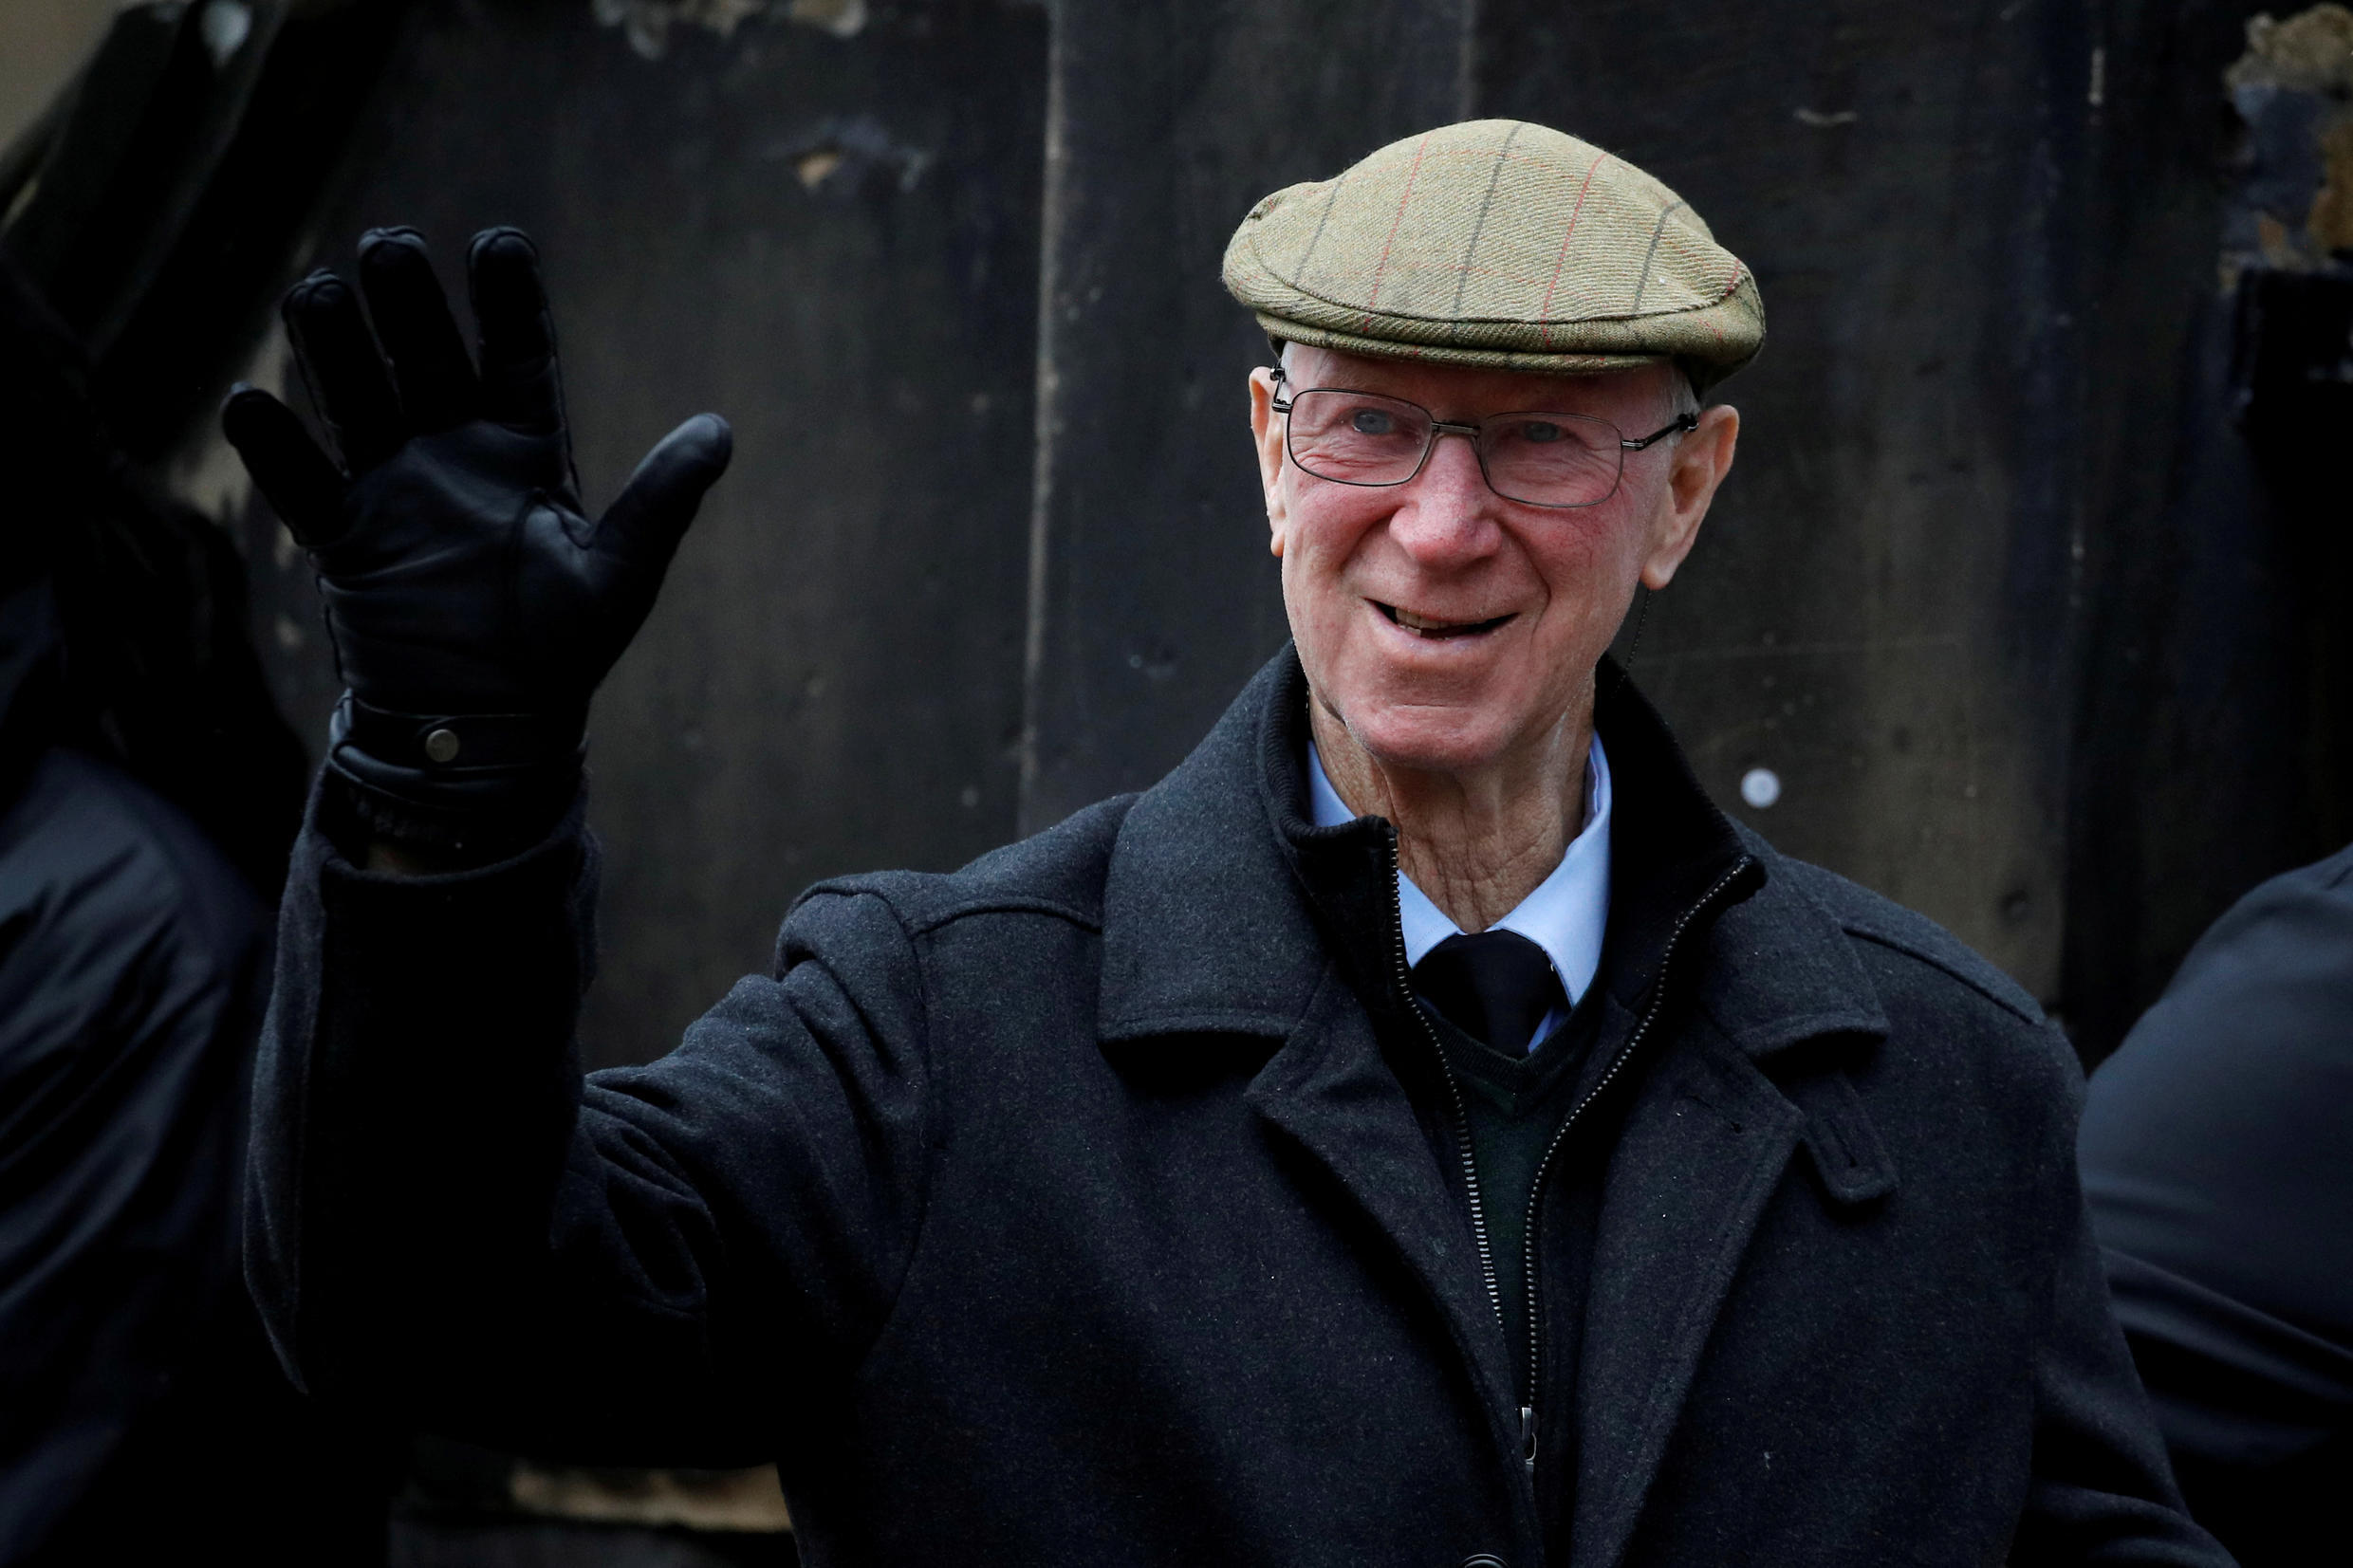 File photo of former England World Cup football hero and Ireland manager Jack Charlton, March 4 2019.